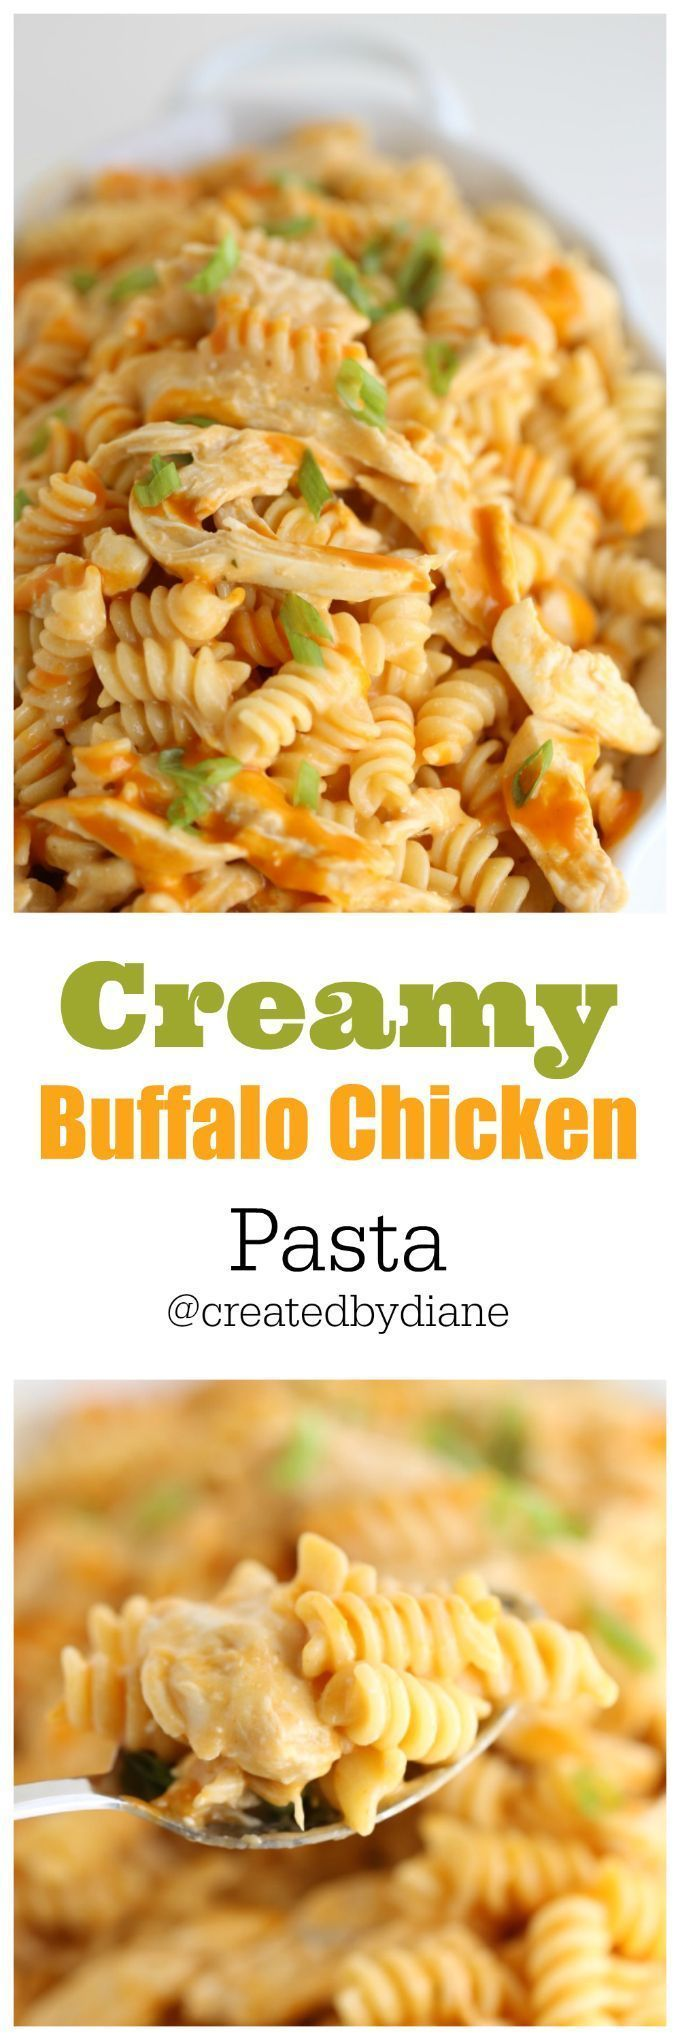 creamy-buffalo-chicken-pasta-recipe-from-createdbydiane